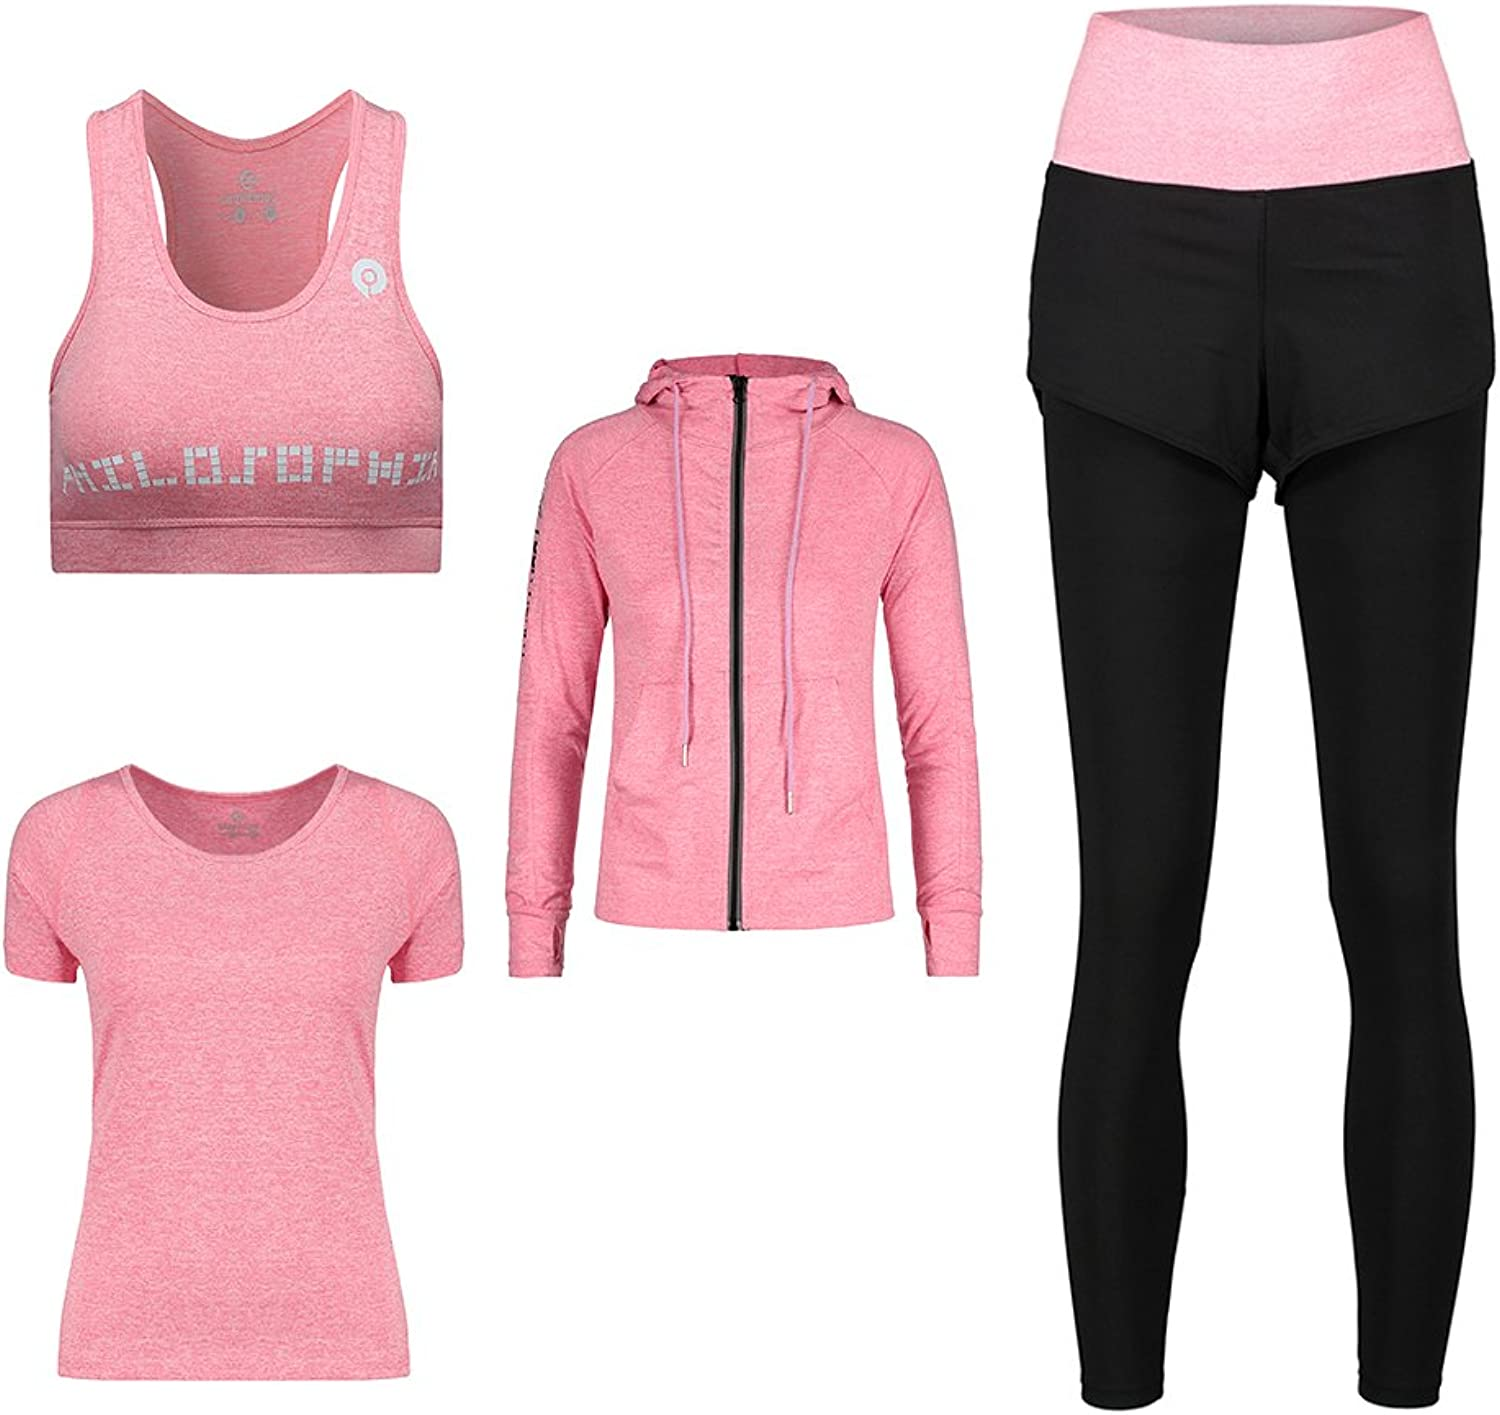 Women's 4 Sports Suit Fitness Running Yoga Set